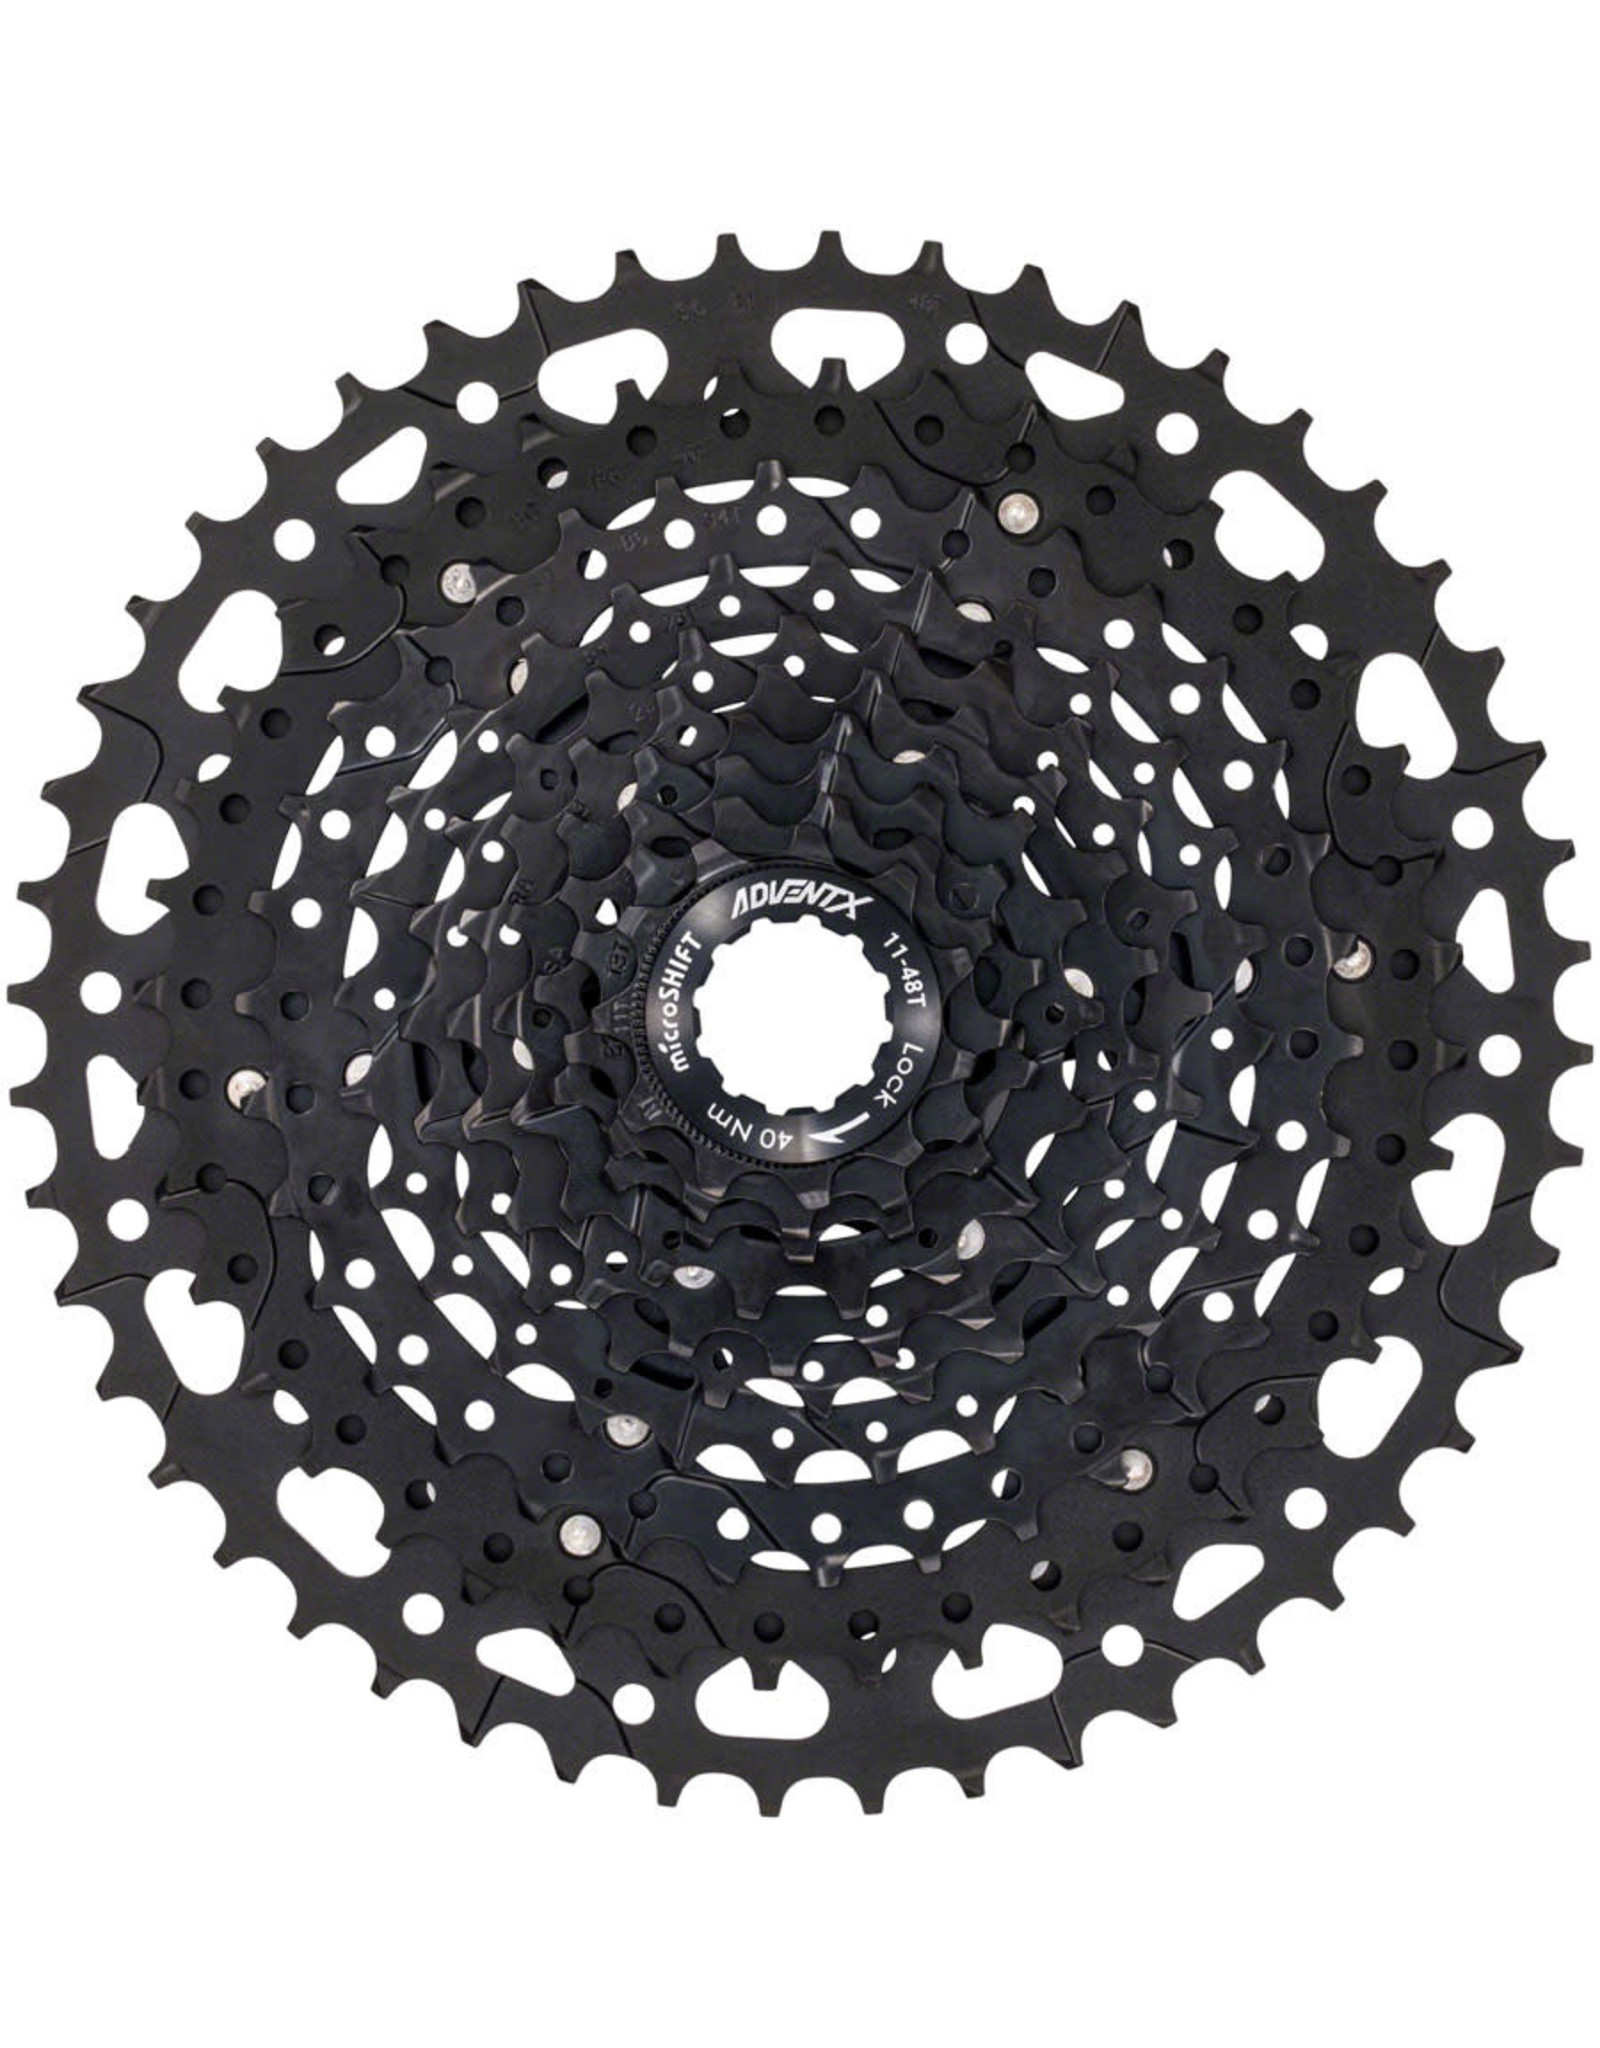 microSHIFT microSHIFT ADVENT X Cassette - 10 Speed, 11-48t, Black, Alloy Spider